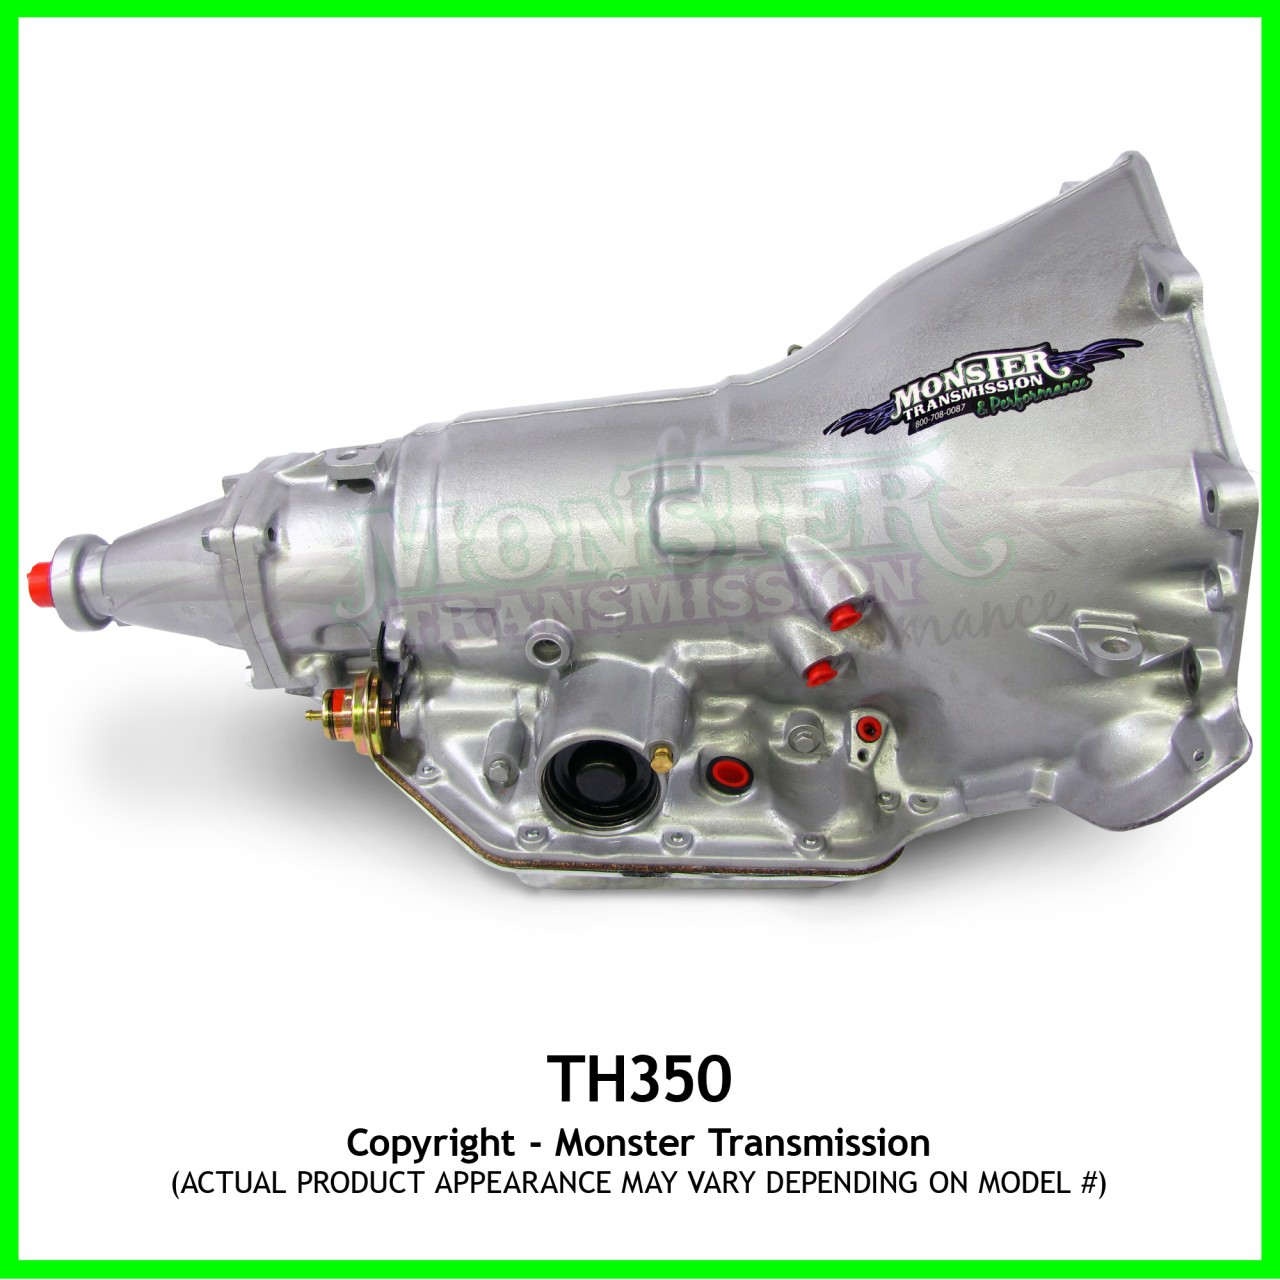 Turbo 350 TH350 Transmission Mild 6 quot Tail Rebuilt TH350